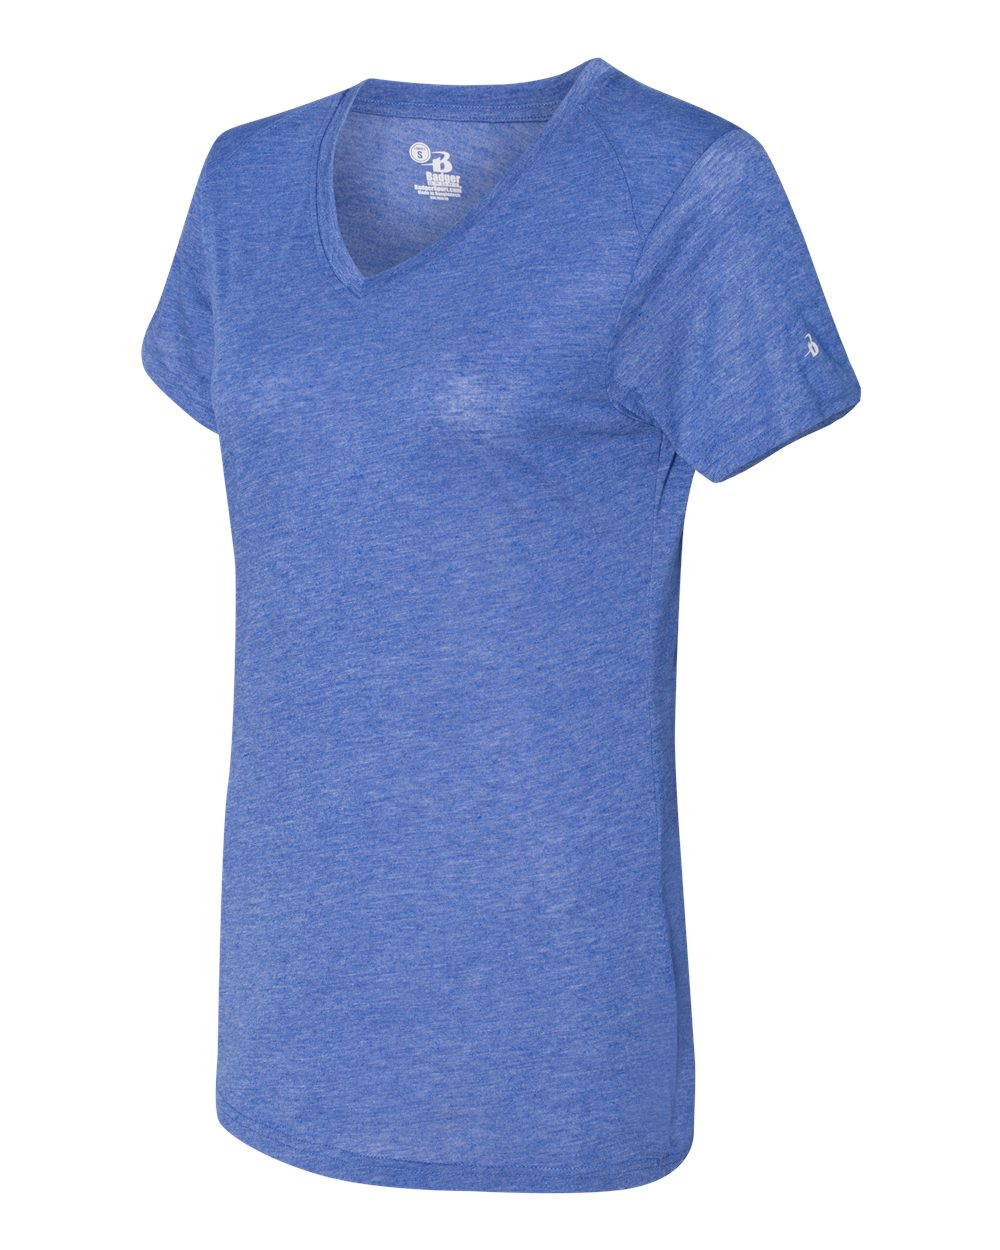 Badger 4962 - Triblend Performance Women's V-Neck T-Shirt